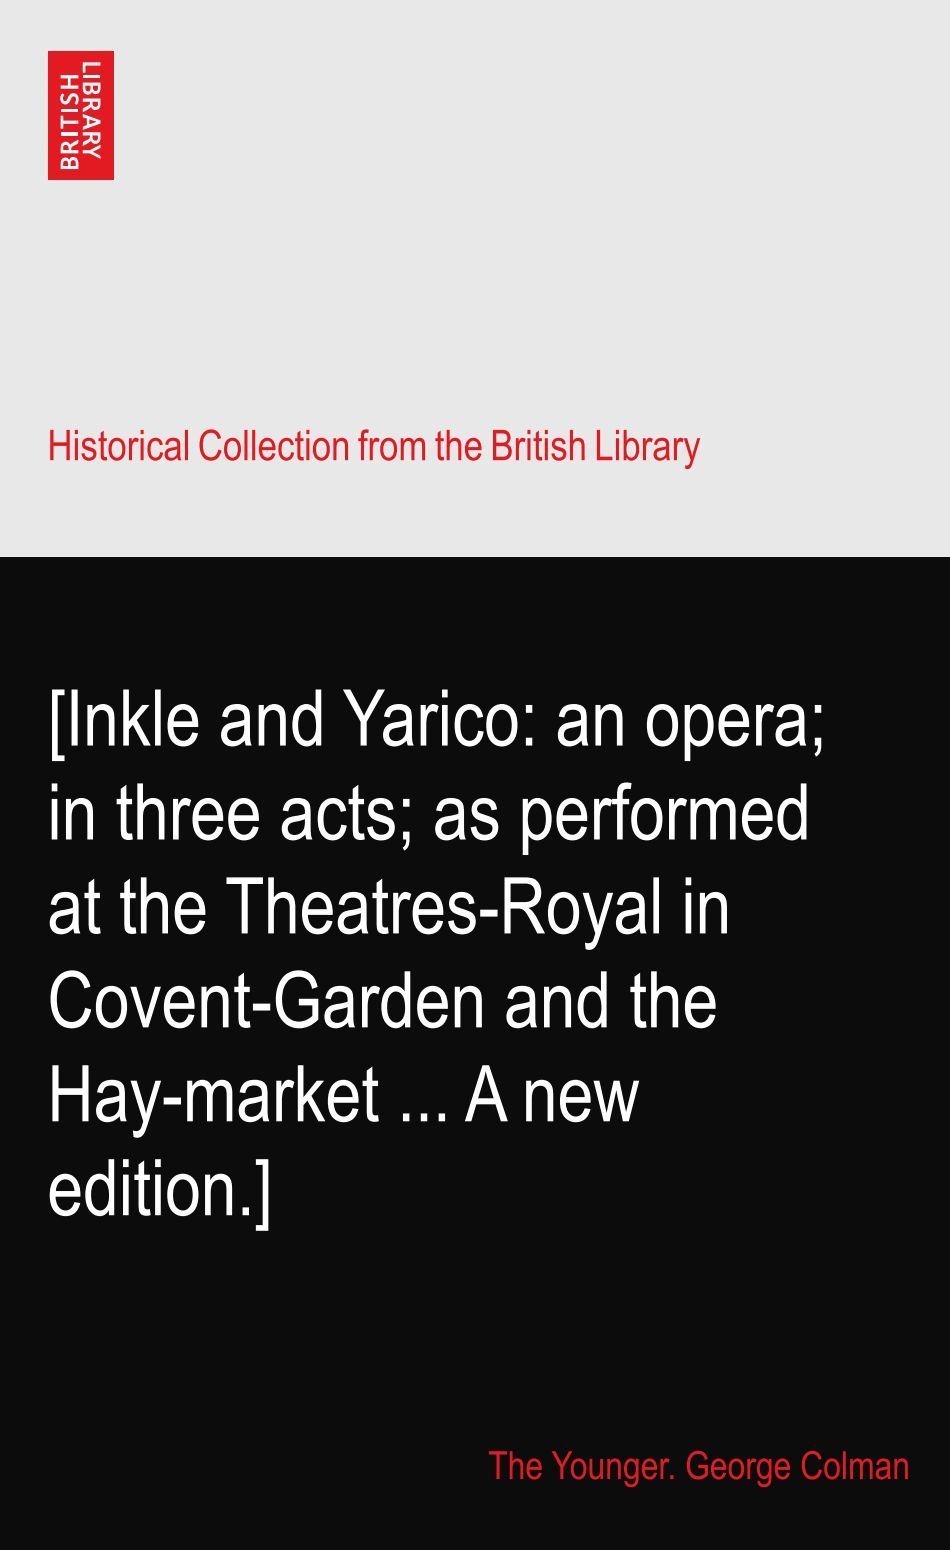 [Inkle and Yarico: an opera; in three acts; as performed at the Theatres-Royal in Covent-Garden and the Hay-market ... A new edition.] pdf